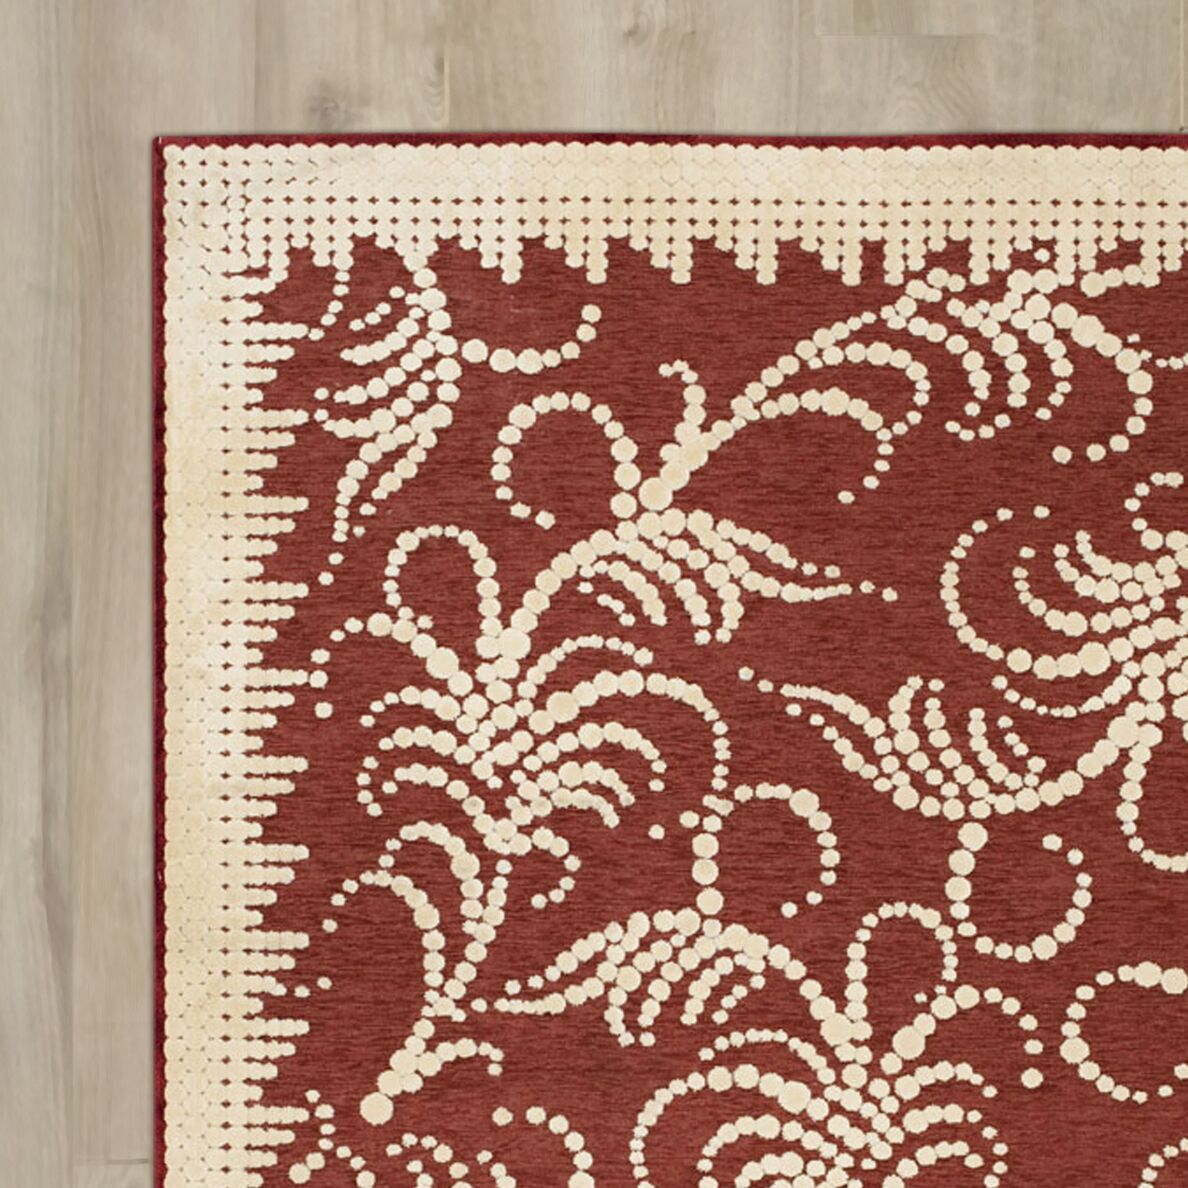 Fountain Swirl Hand-Woven Red/Ivory Area Rug Rug Size: Rectangle 5'3